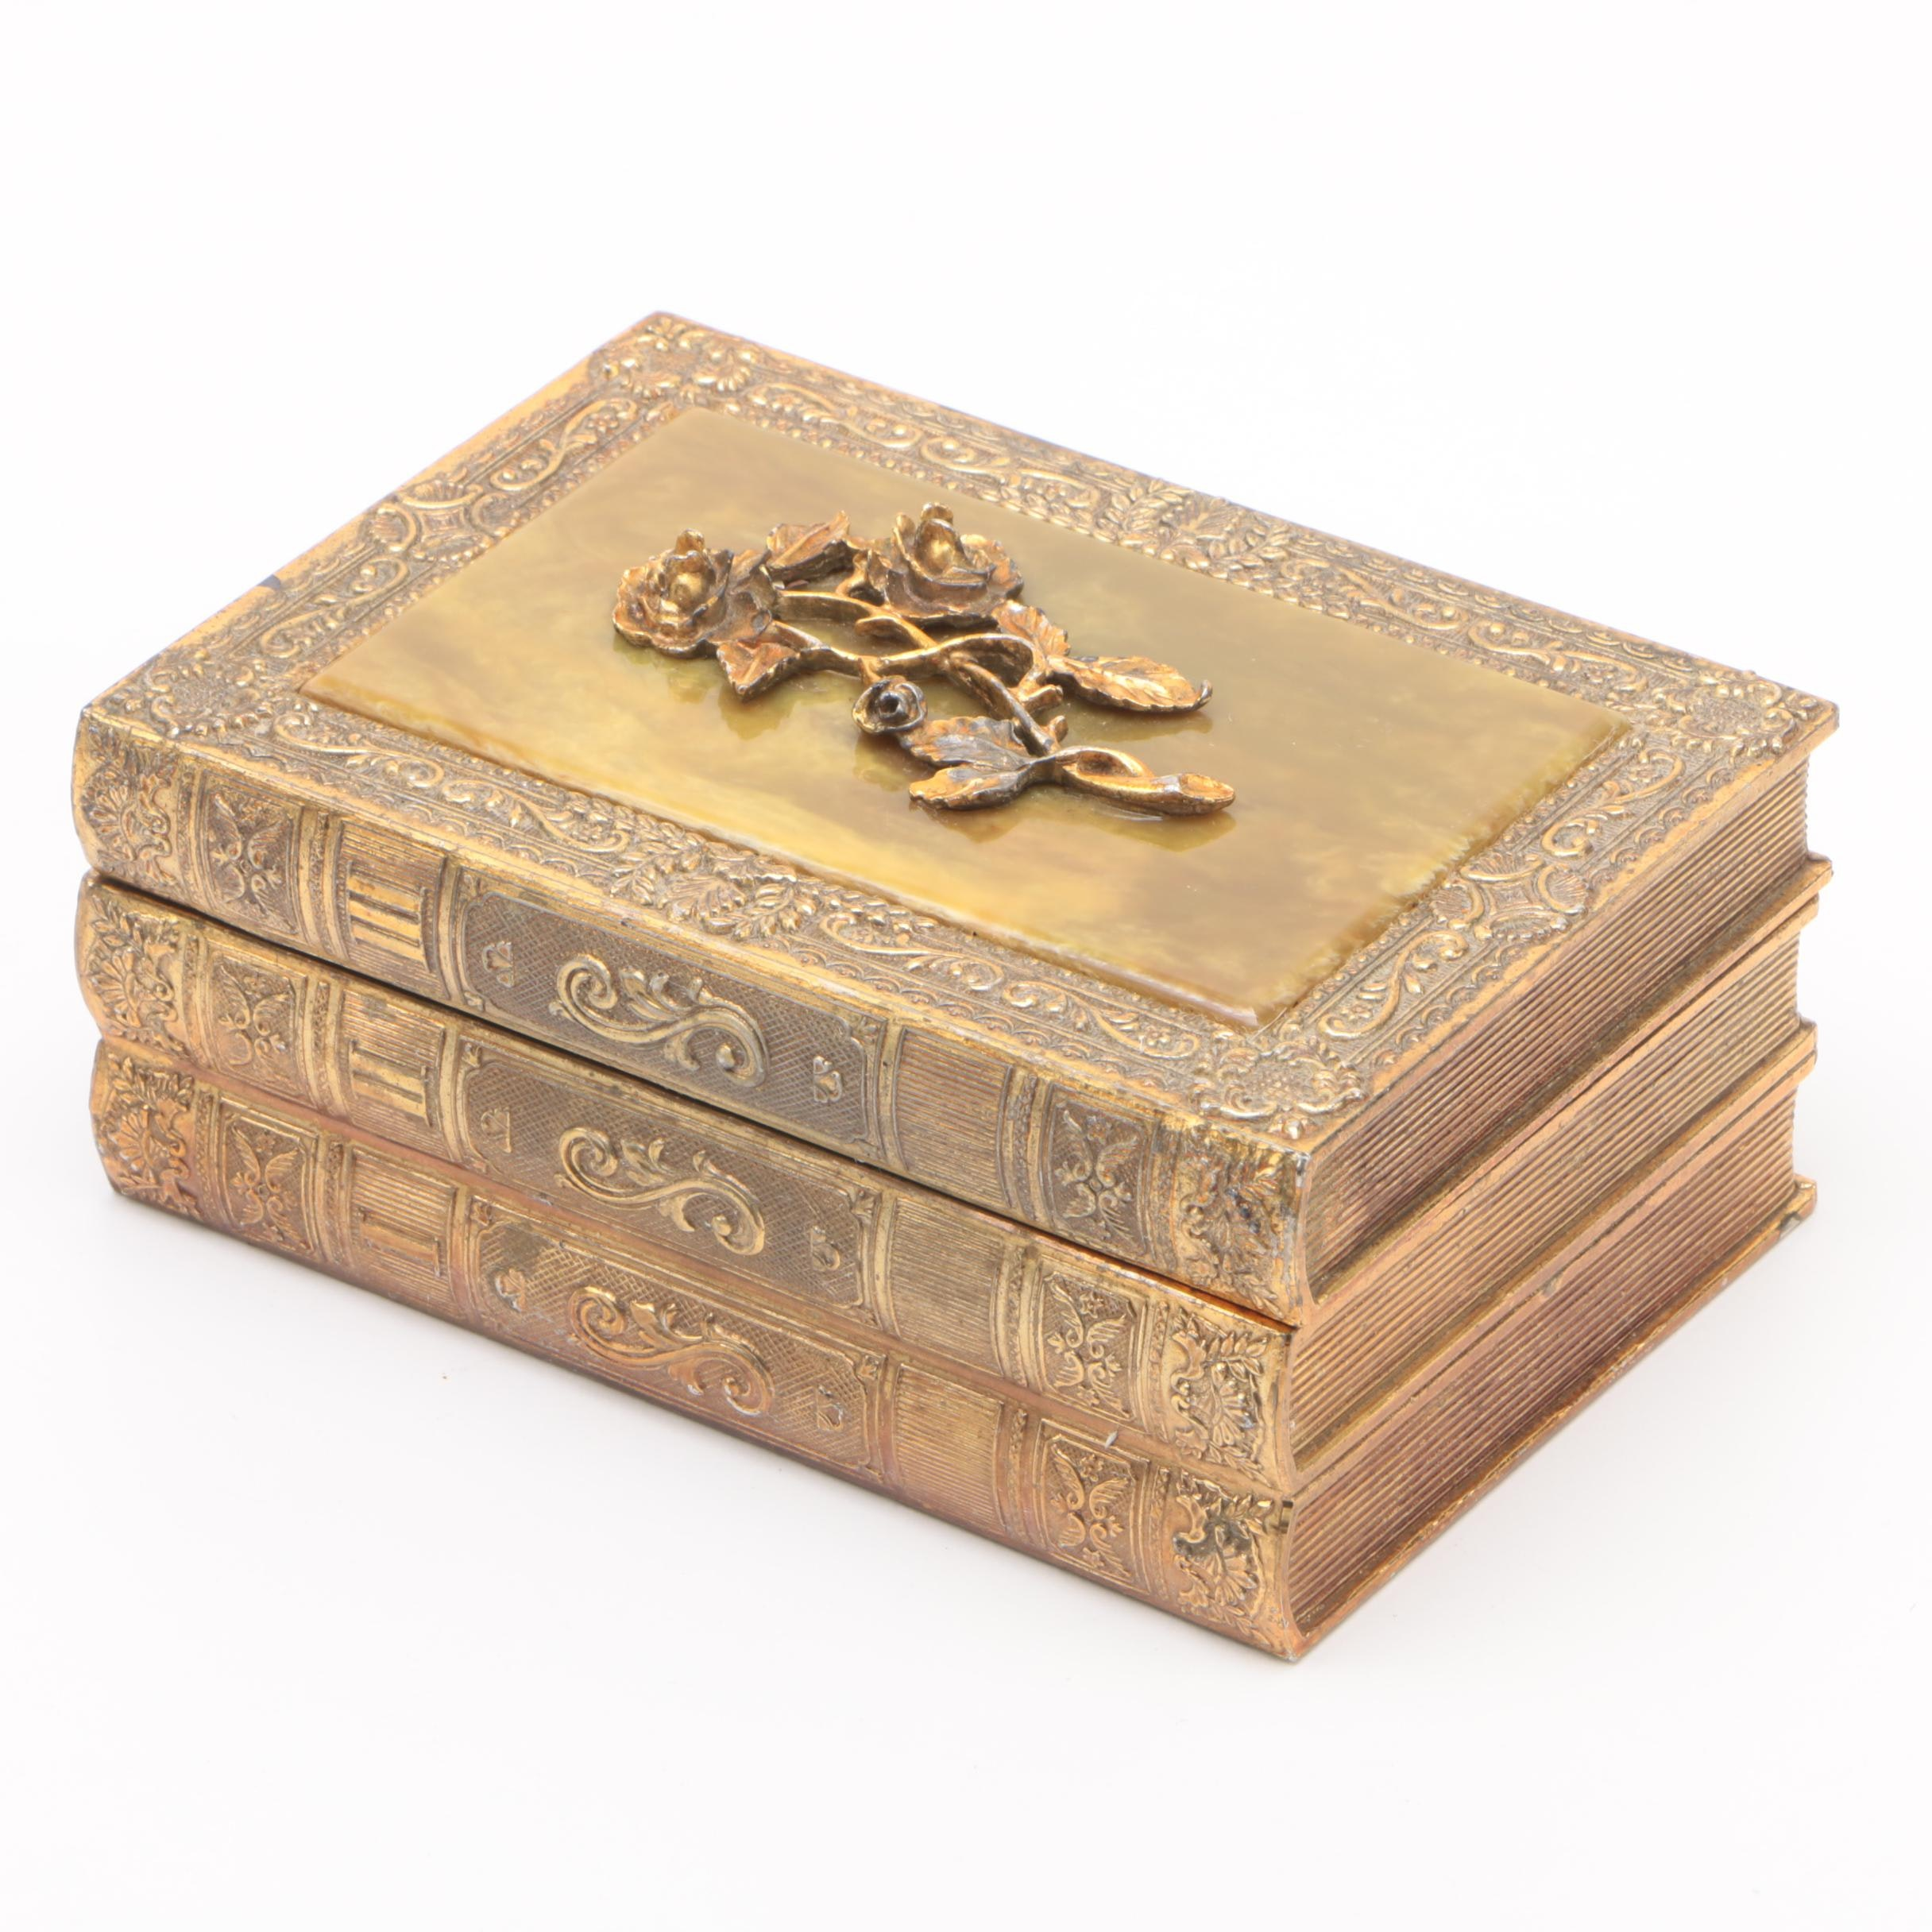 Japanese Gilt Metal Book Stack Box with Resin Inlay Lid, Early 20th Century